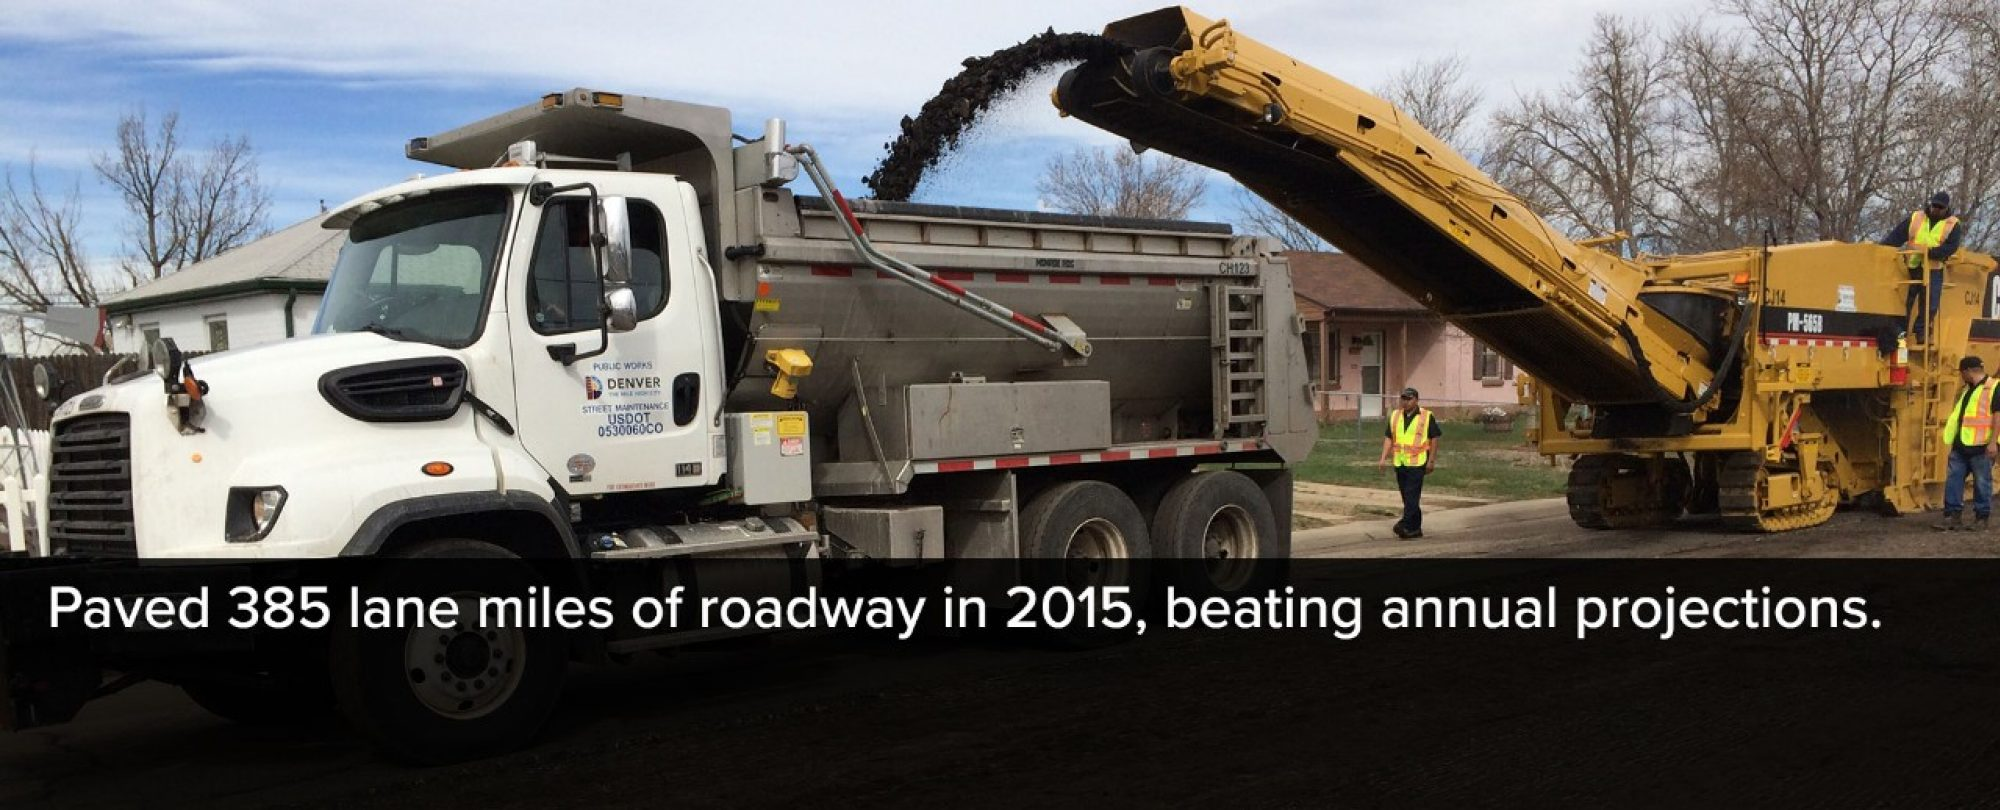 Photo of a city paving truck. Denver Public Works paved 385 lane miles of roadway in 2015, beating annual projections.